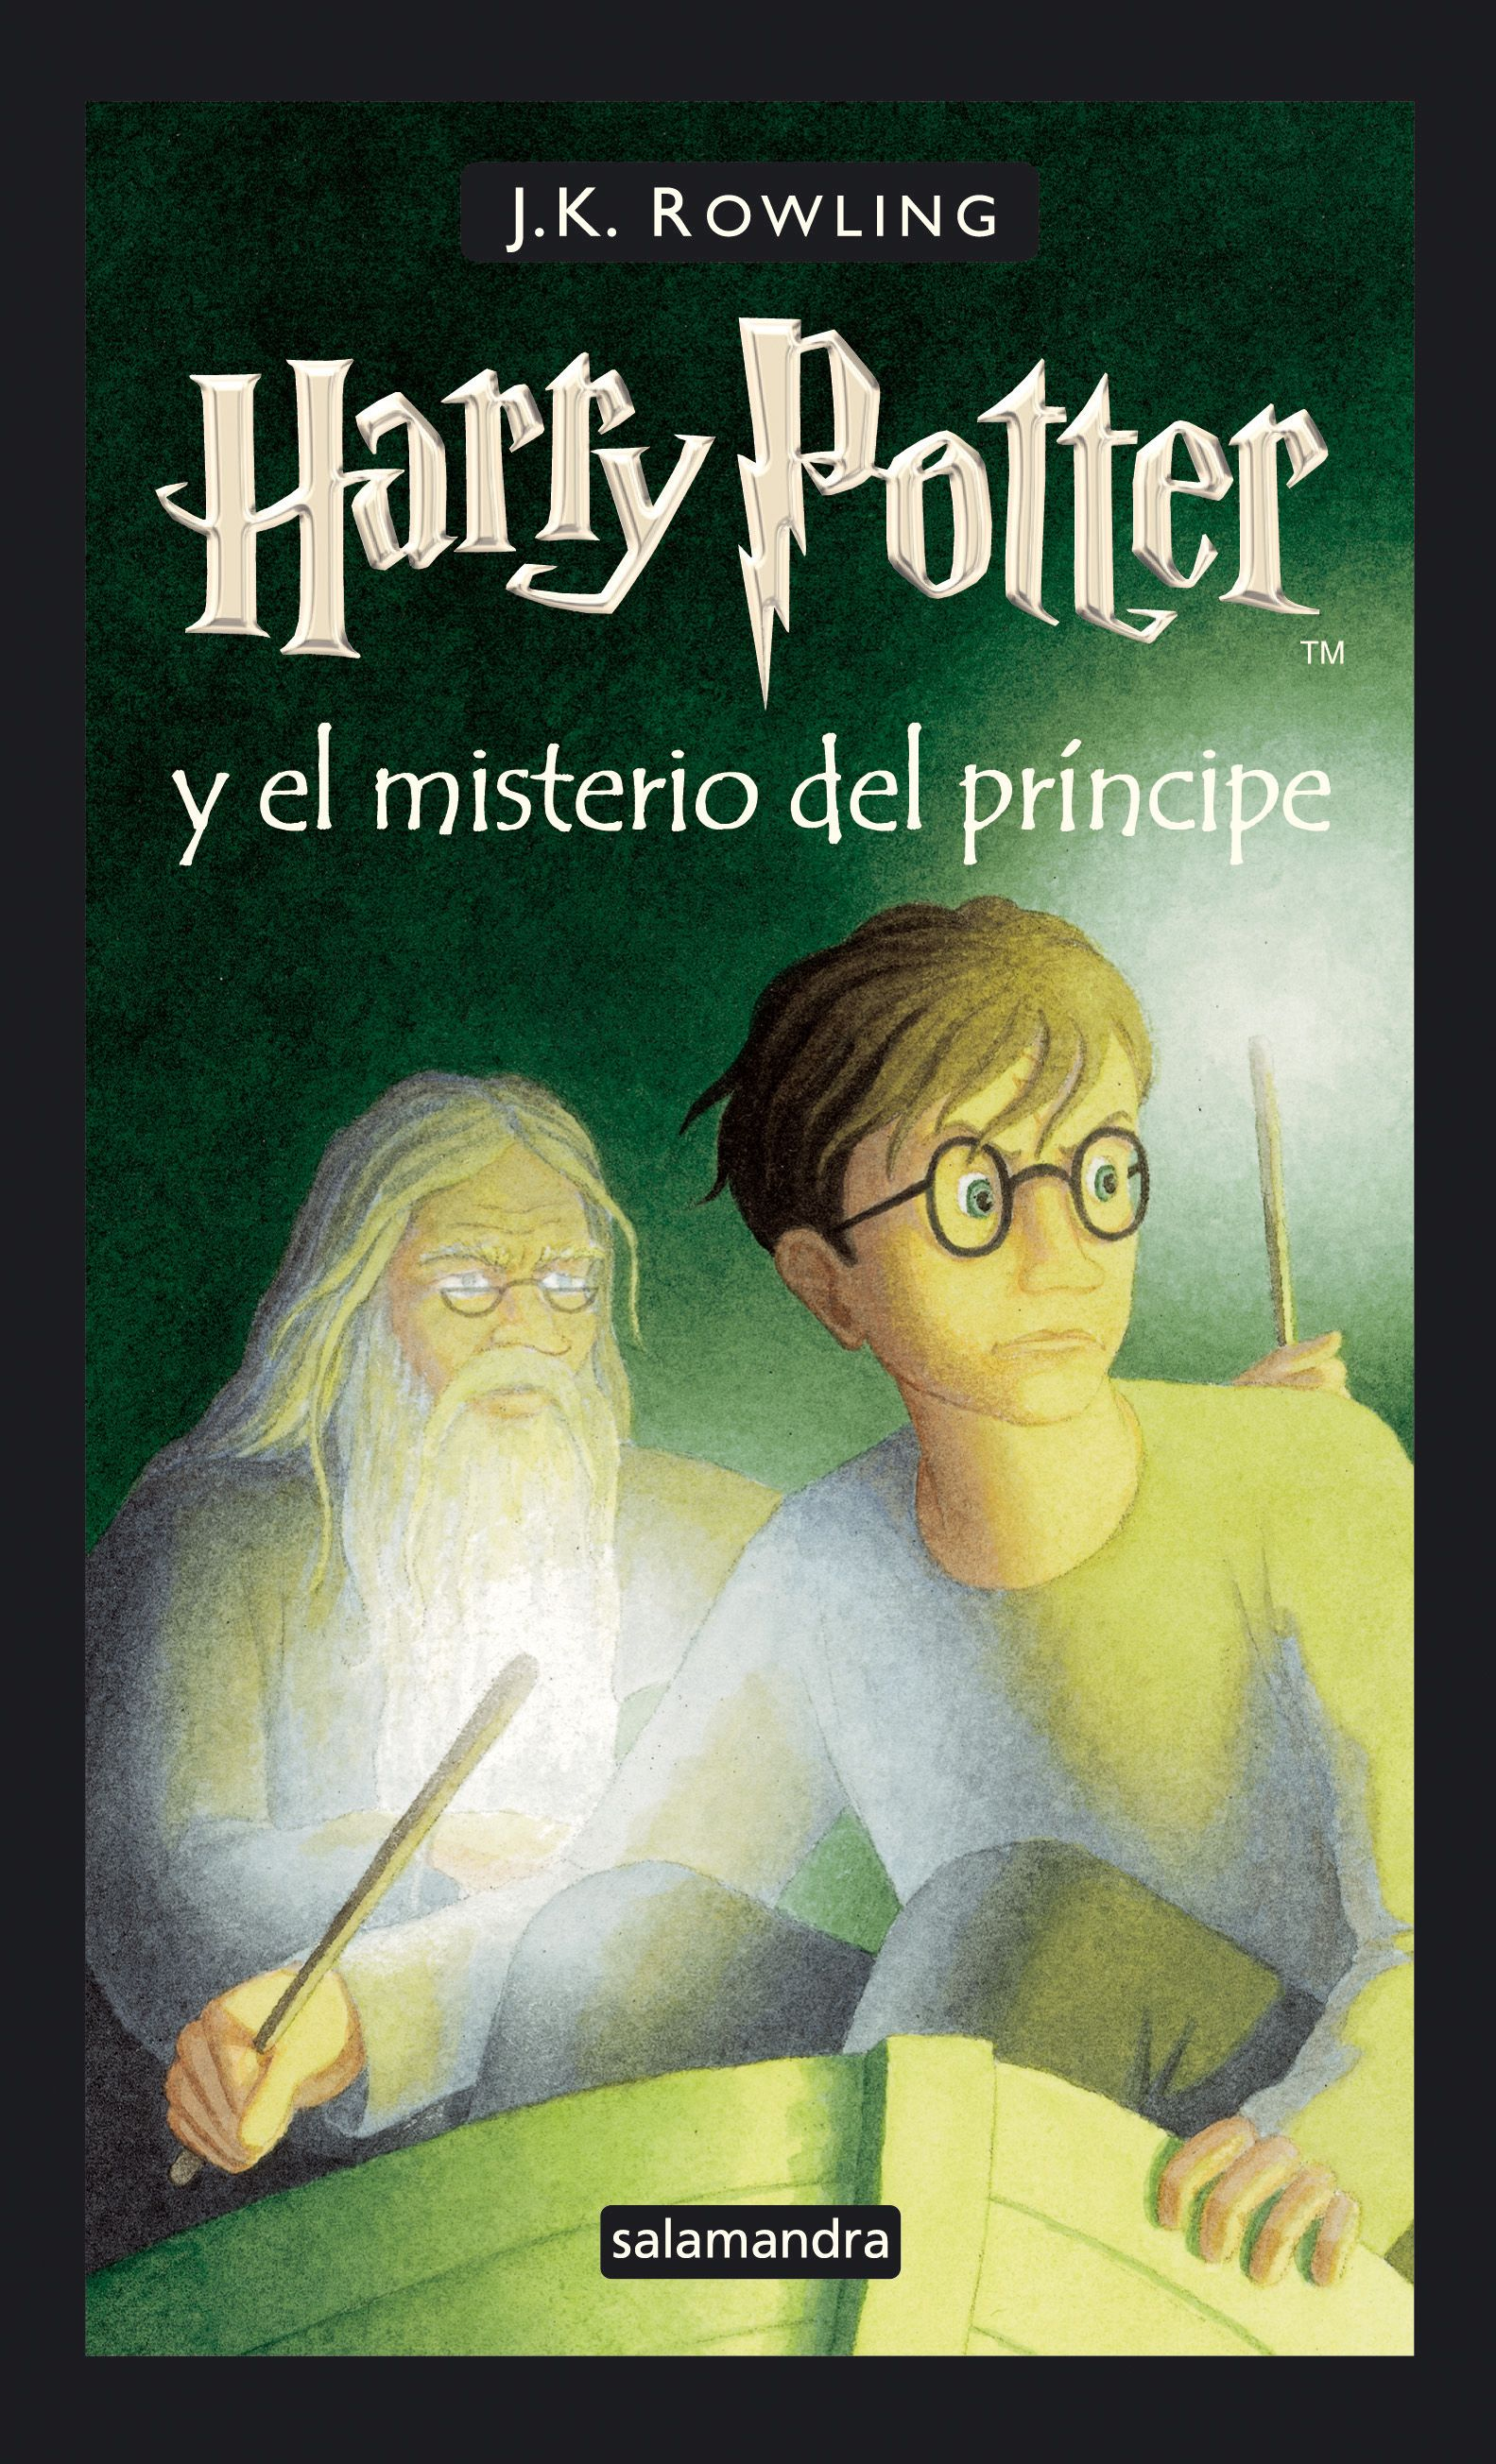 Harry Potter Libros Pdf Descargar Los 11 Libros De Harry Potter Completos En